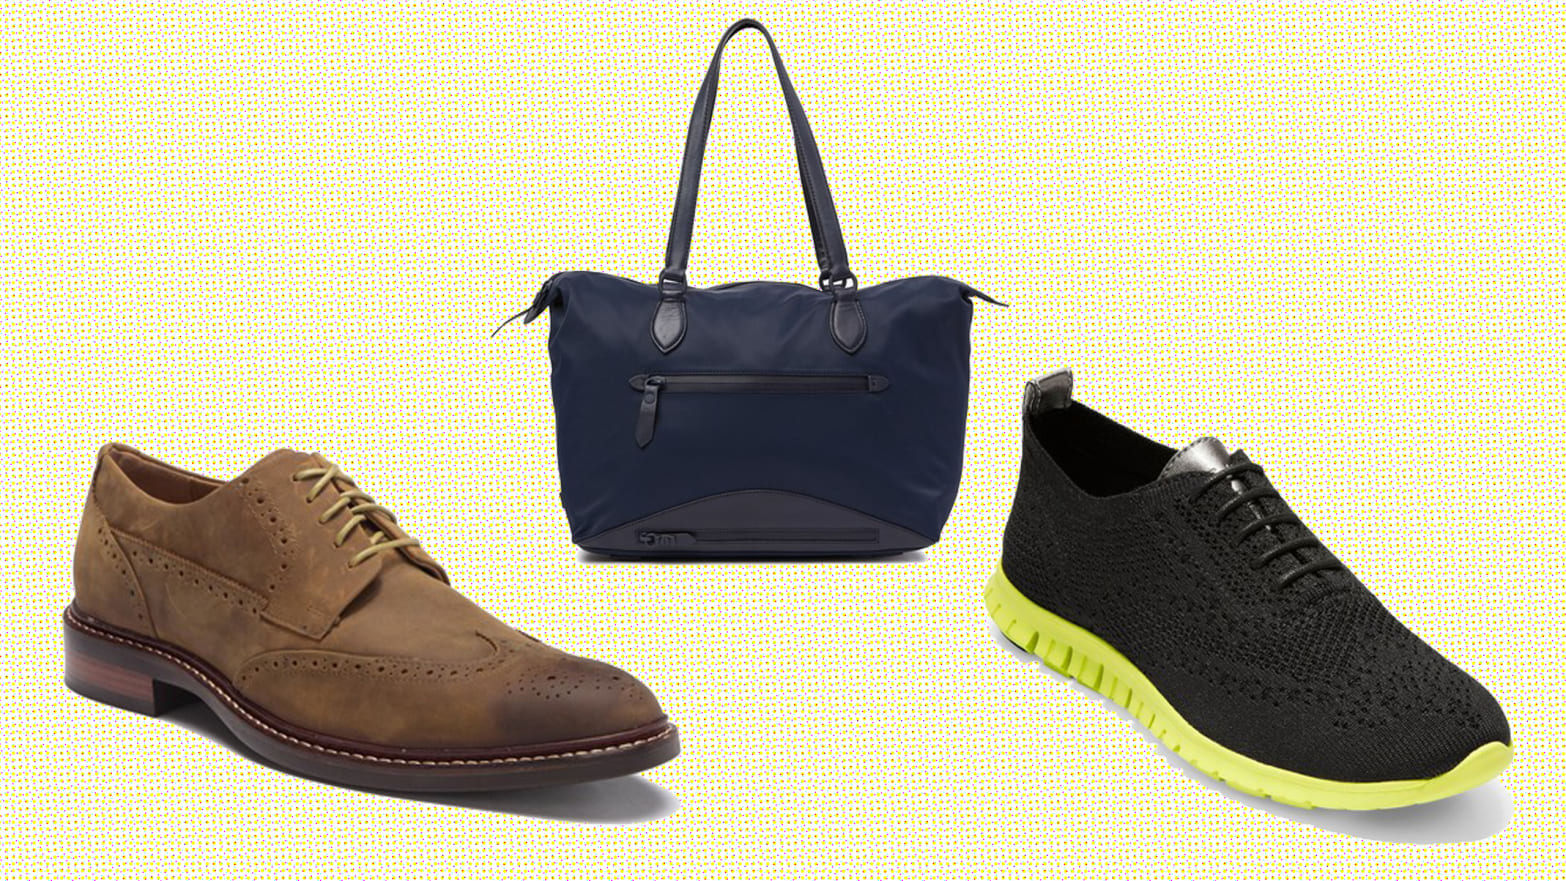 Shop the Cole Haan Sale at Nordstrom Rack